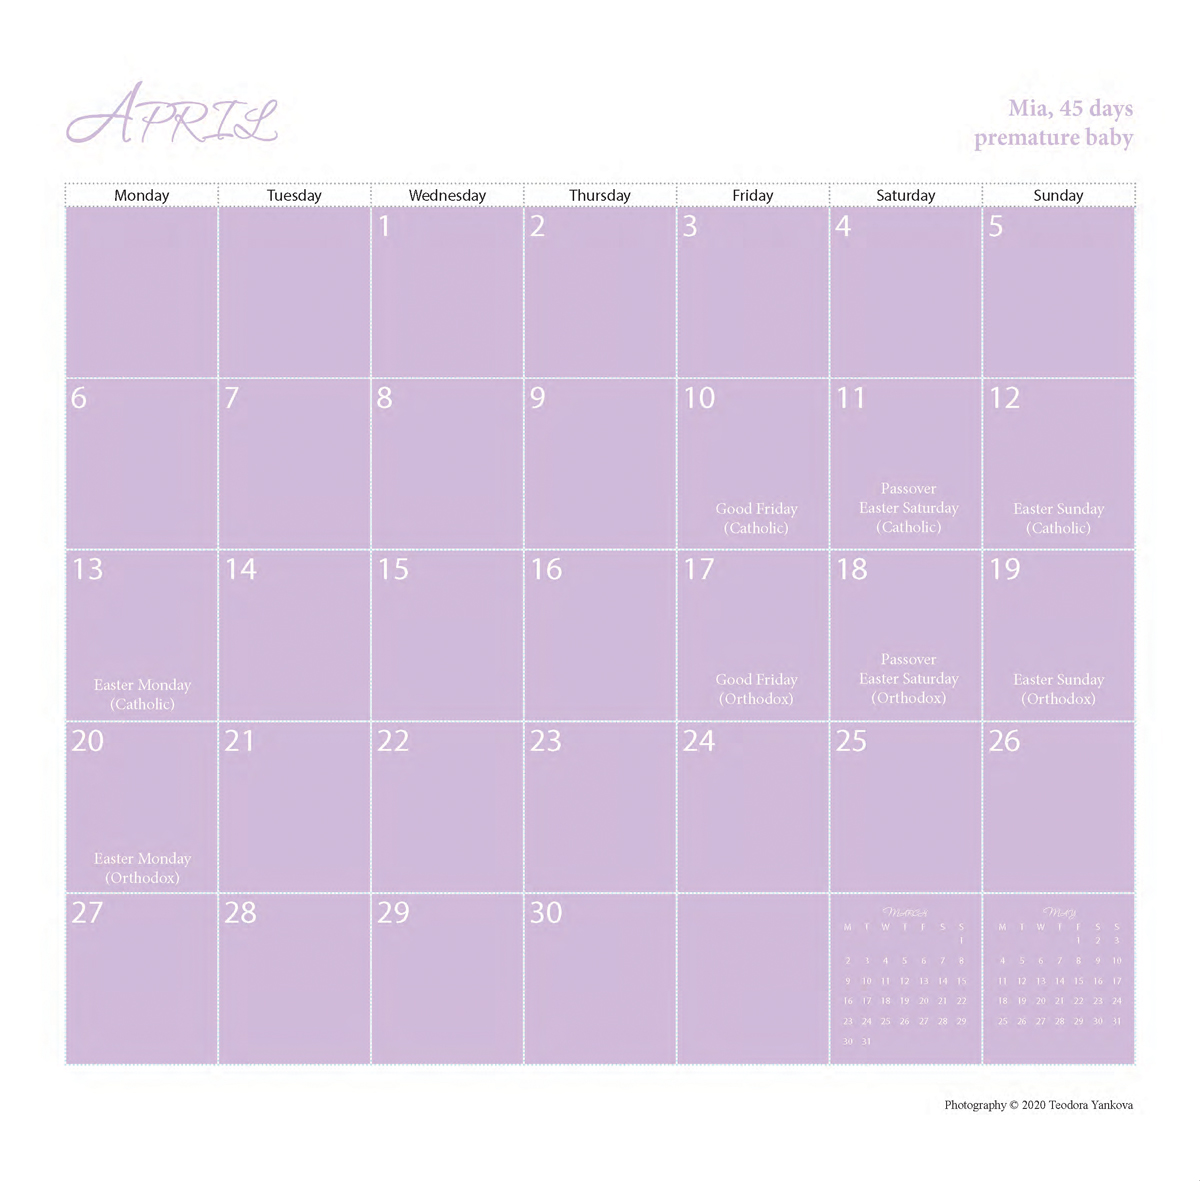 Pearl-in-the-Shell-Calendar-2020 (11)